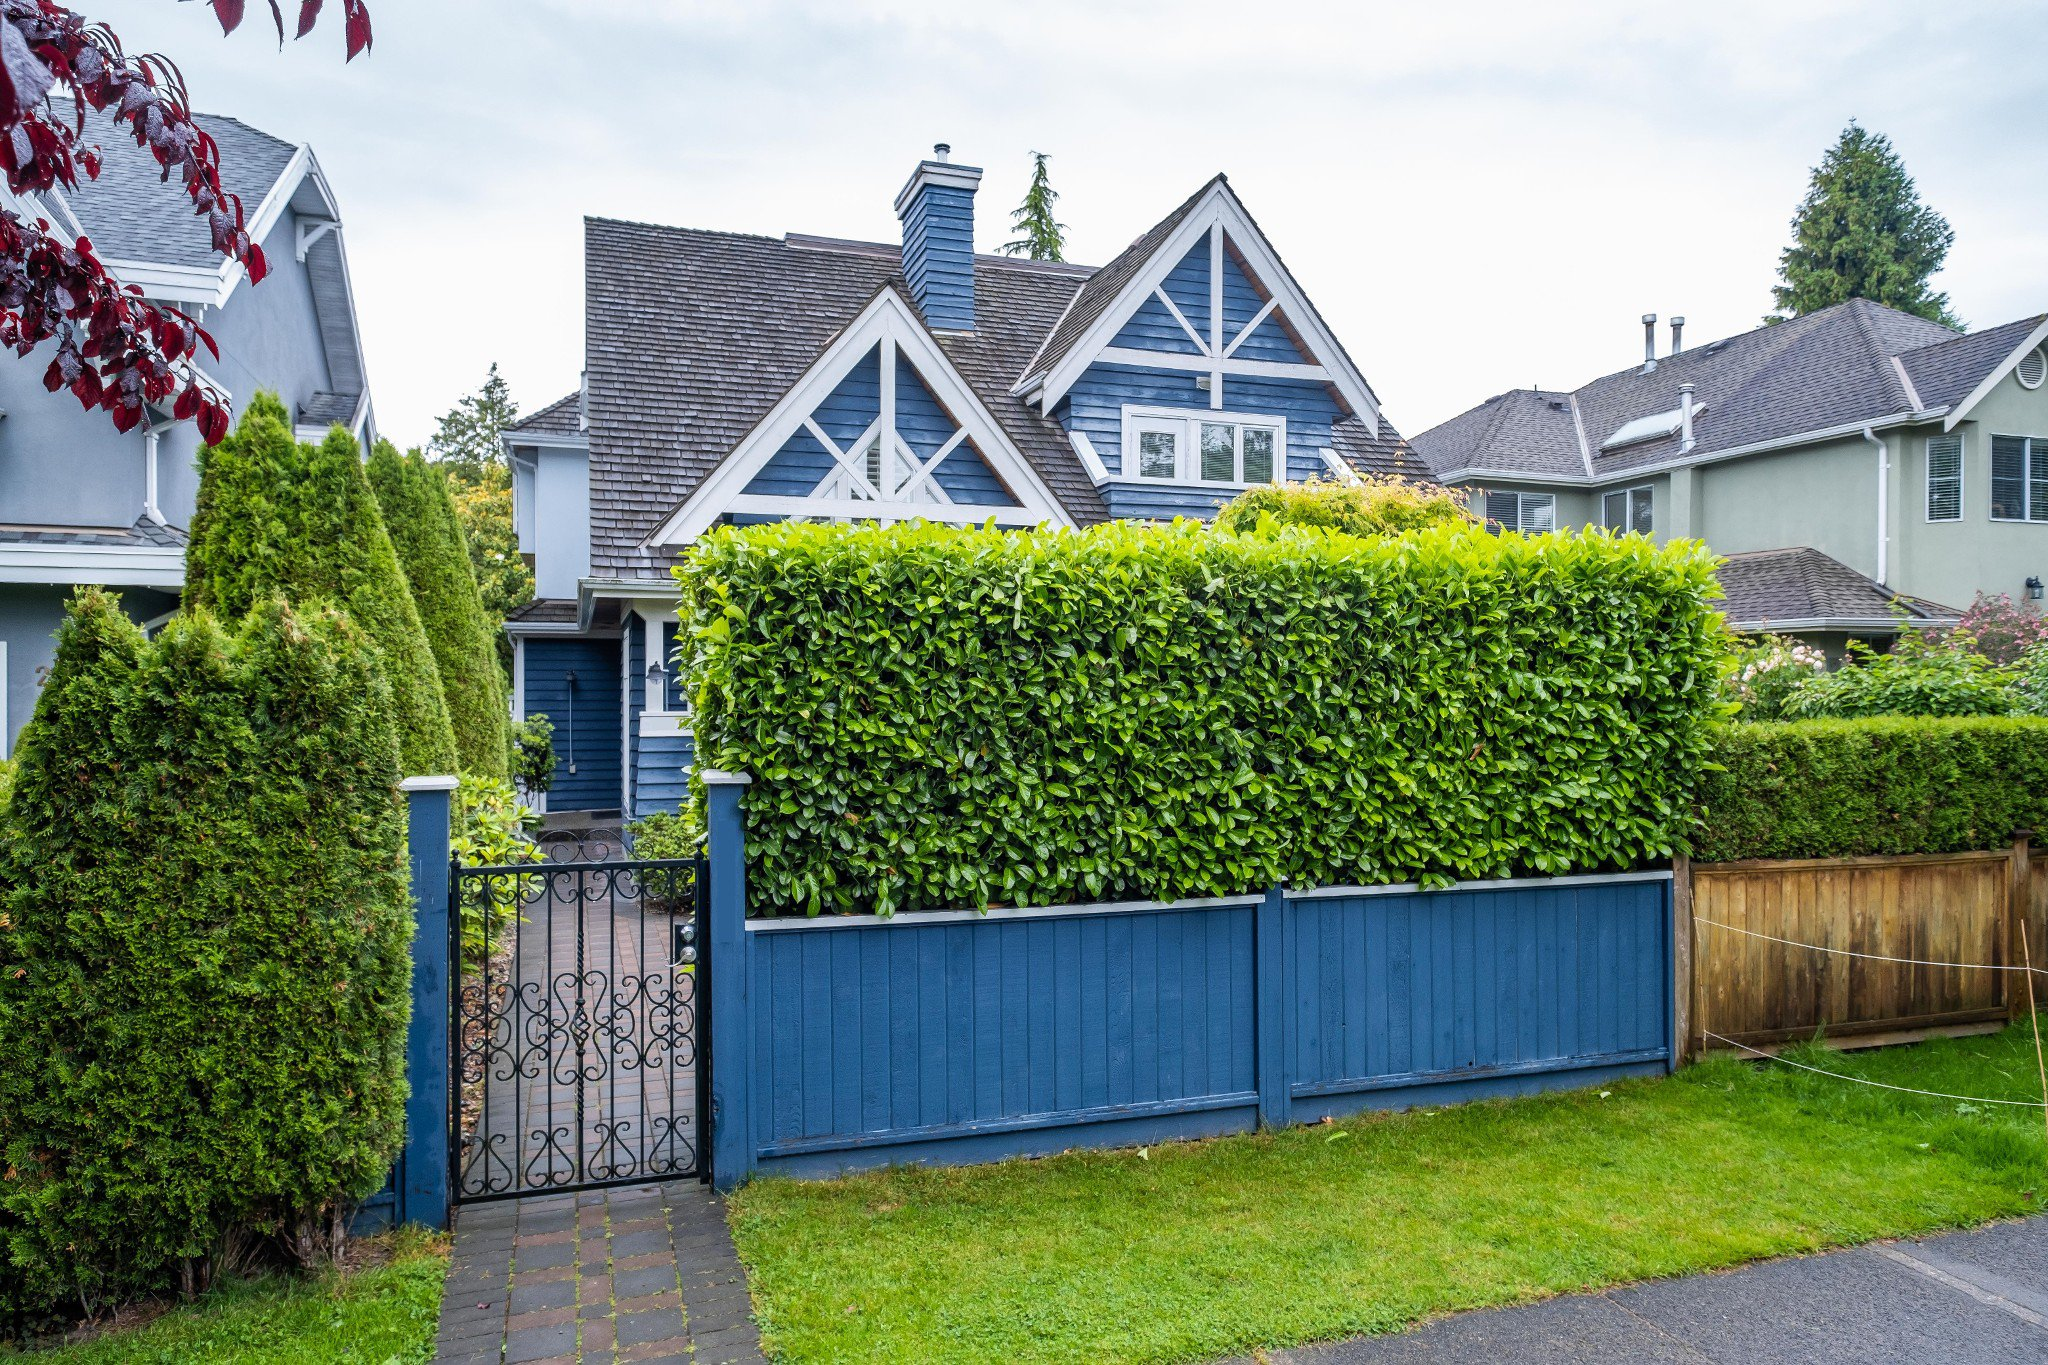 Main Photo: 2xxx W 15 Avenue in Vancouver: Kitsilano 1/2 Duplex for sale or rent (Vancouver West)